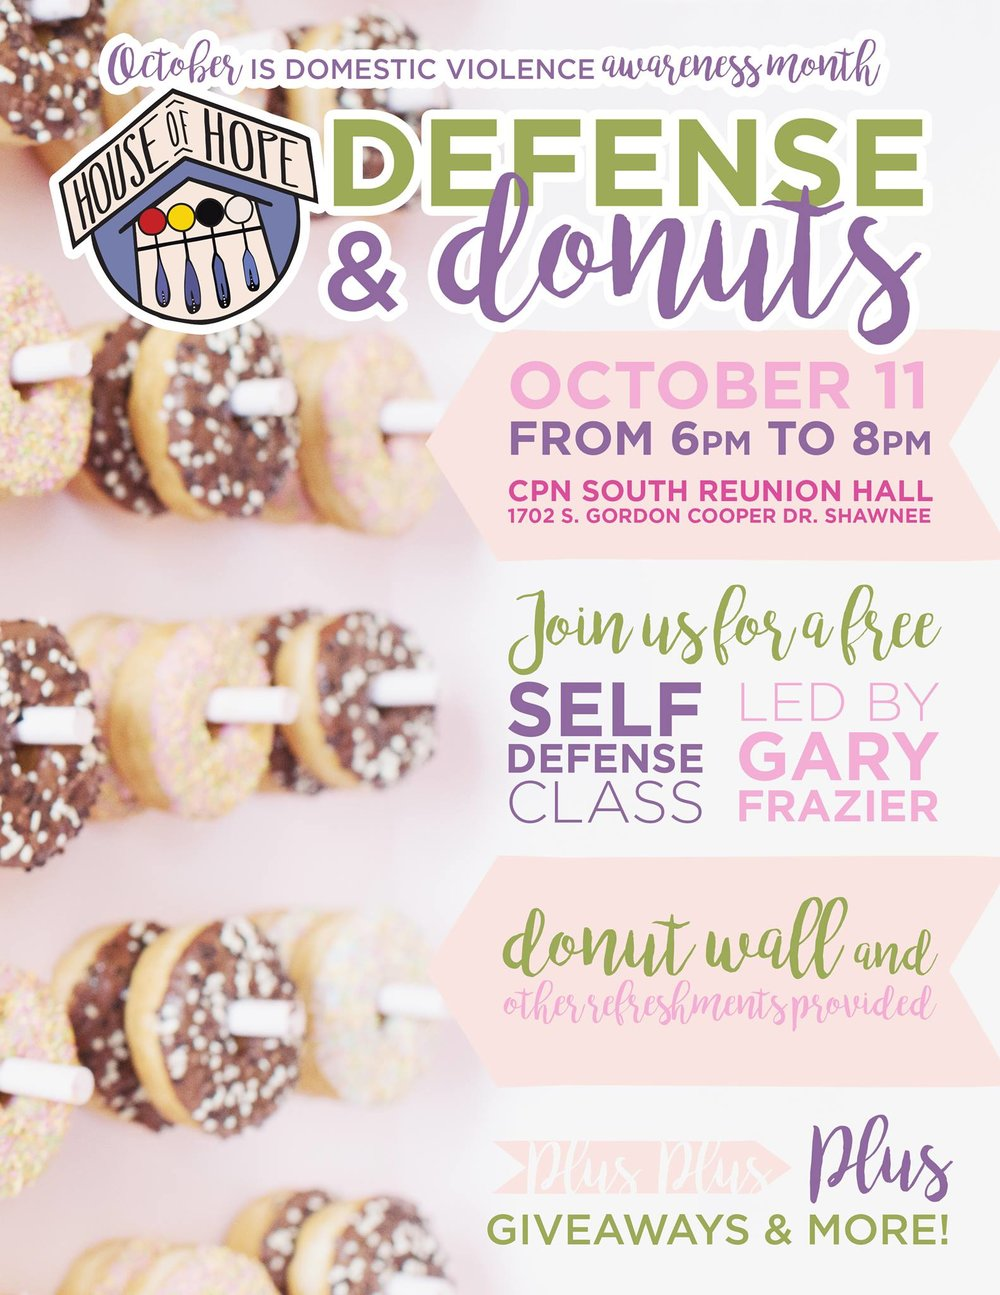 CPN Defense Donuts 2018.jpg